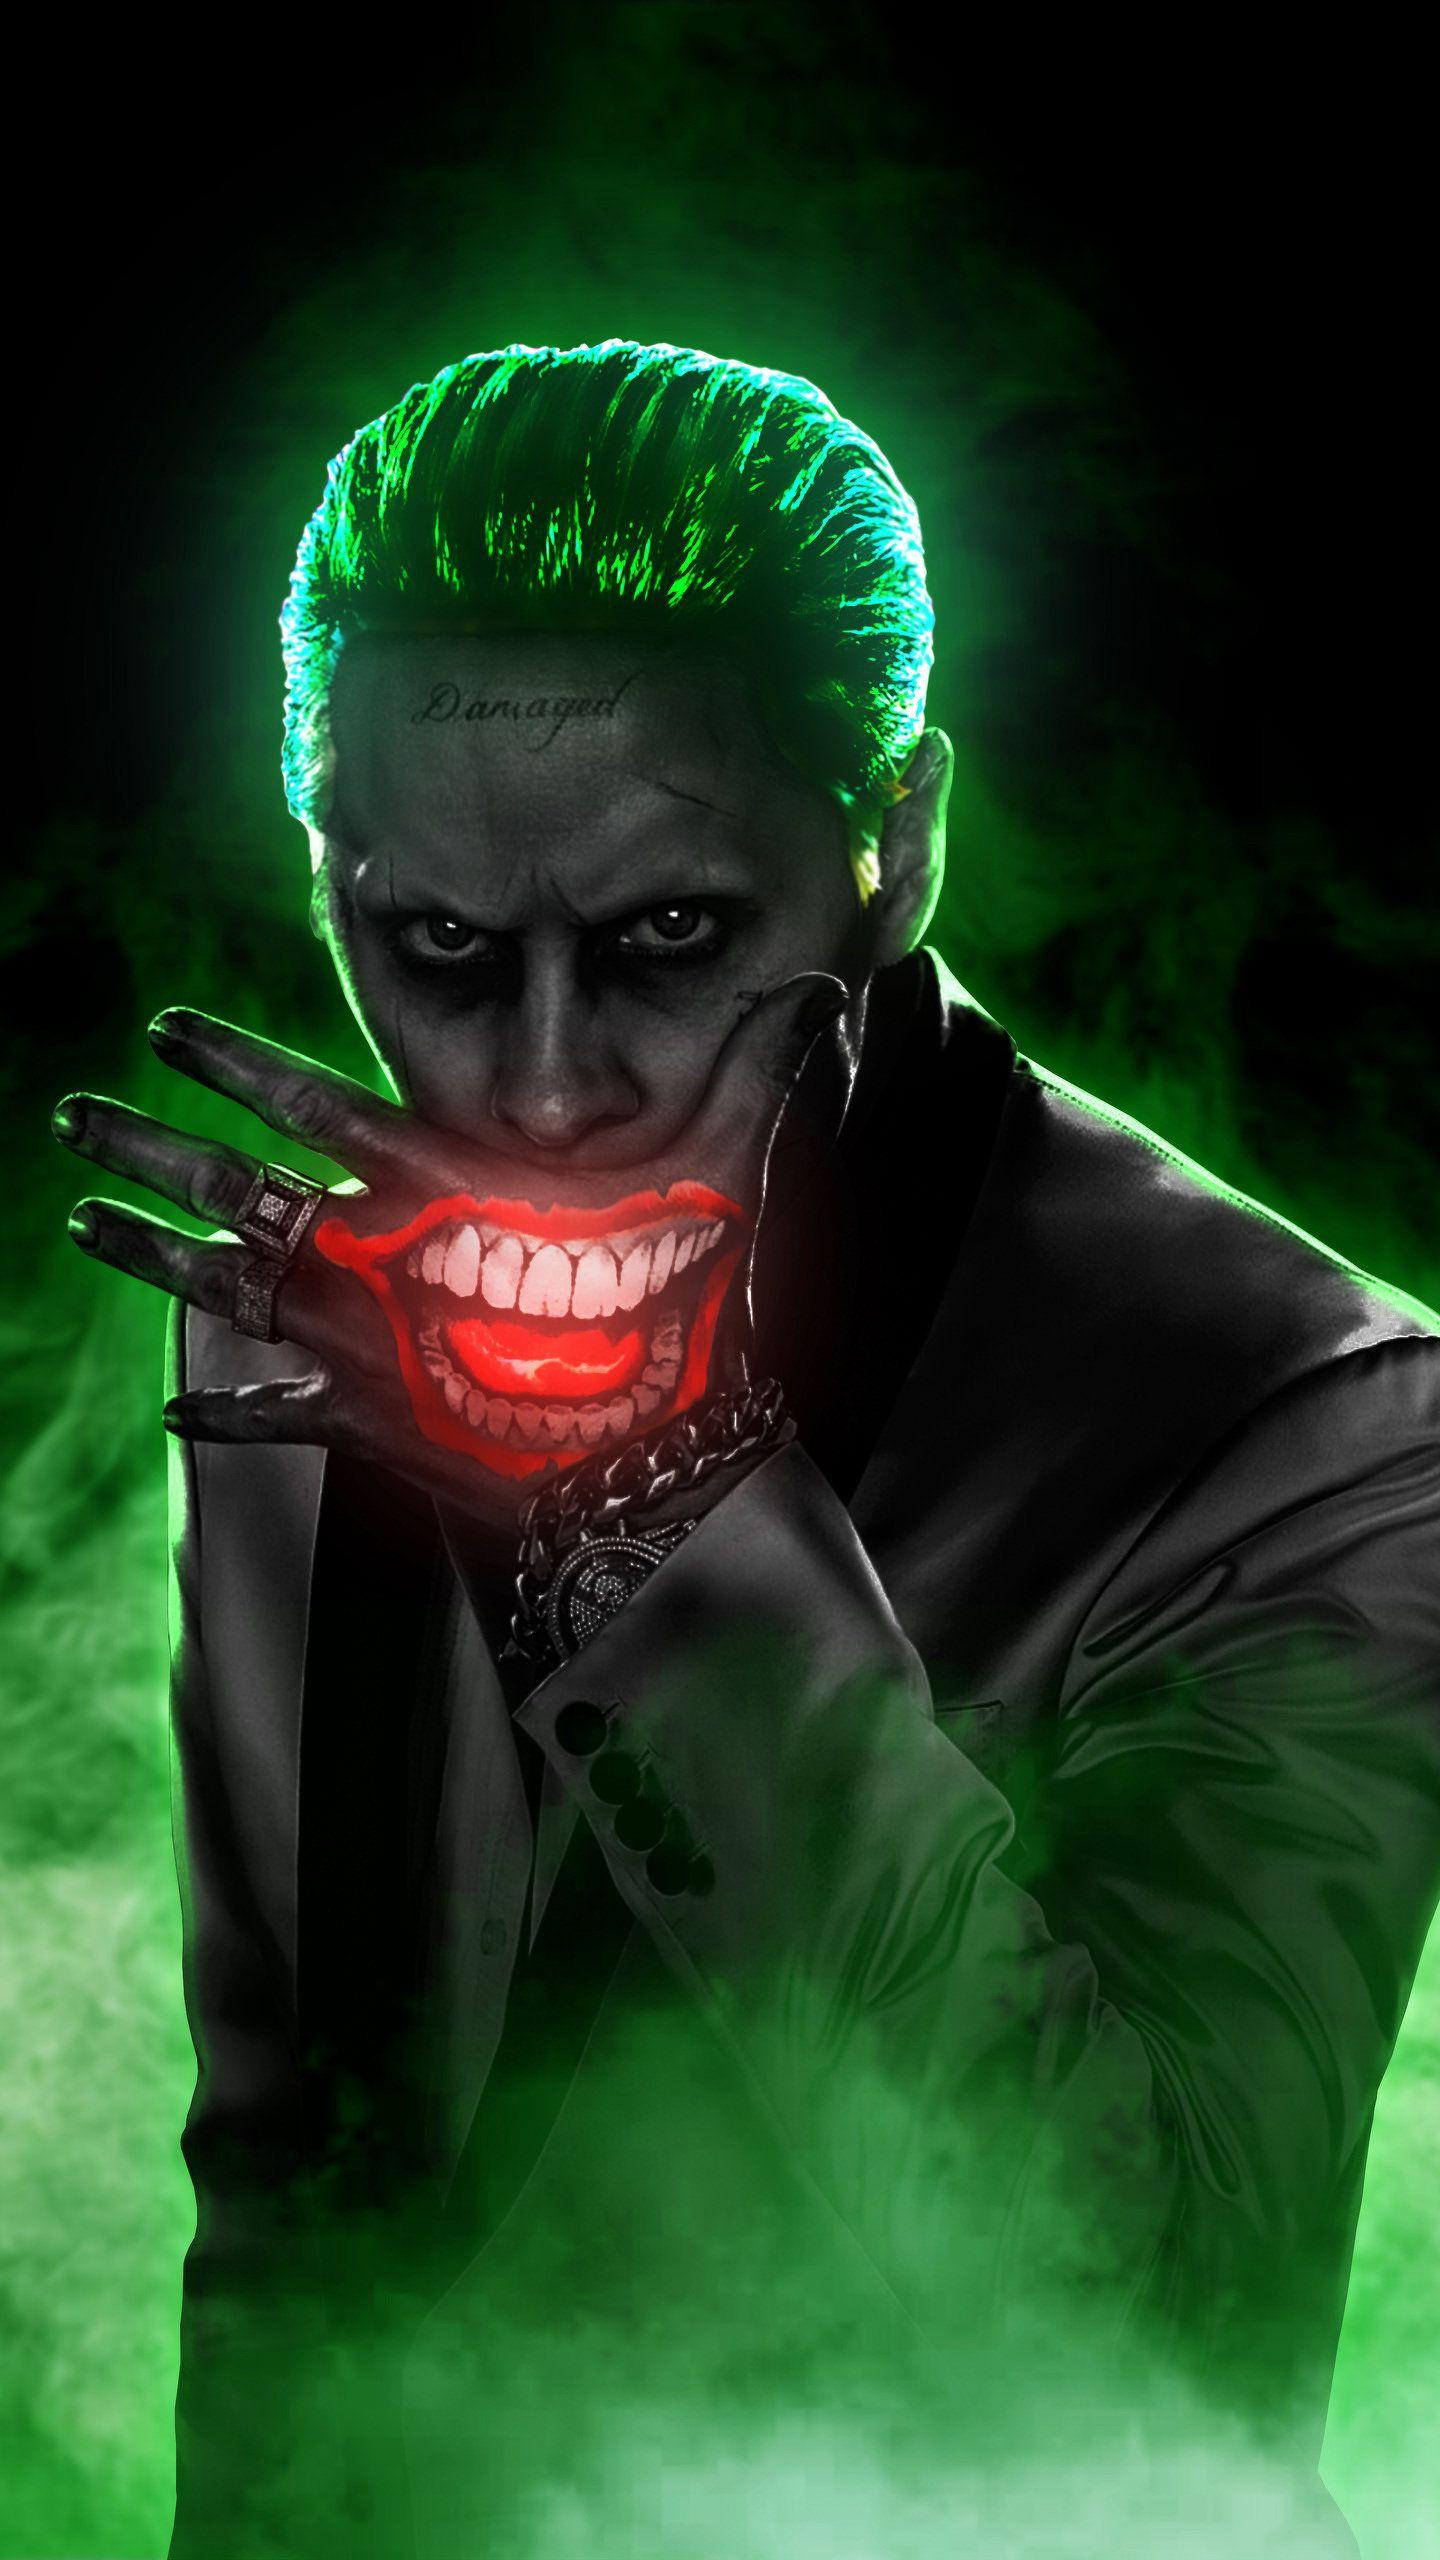 Best Joker 4k Mobile Wallpapers Wallpaper Cave